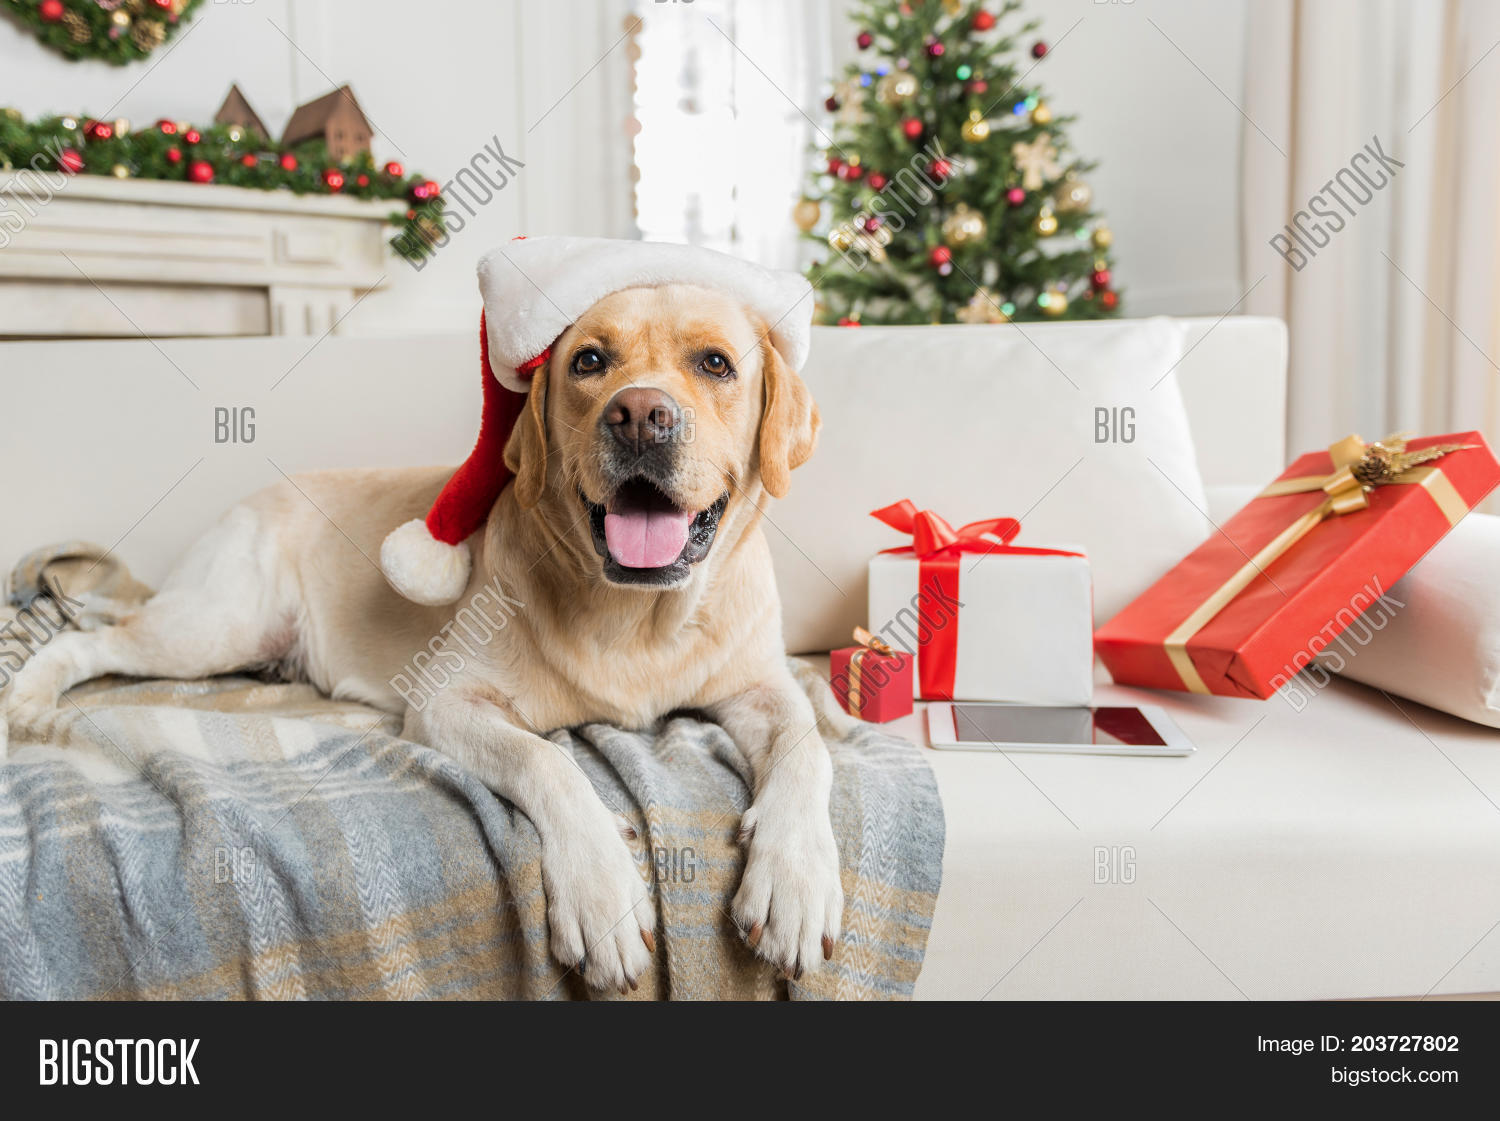 Big Sofa Fawn Four Legged Santa Image Photo Free Trial Bigstock